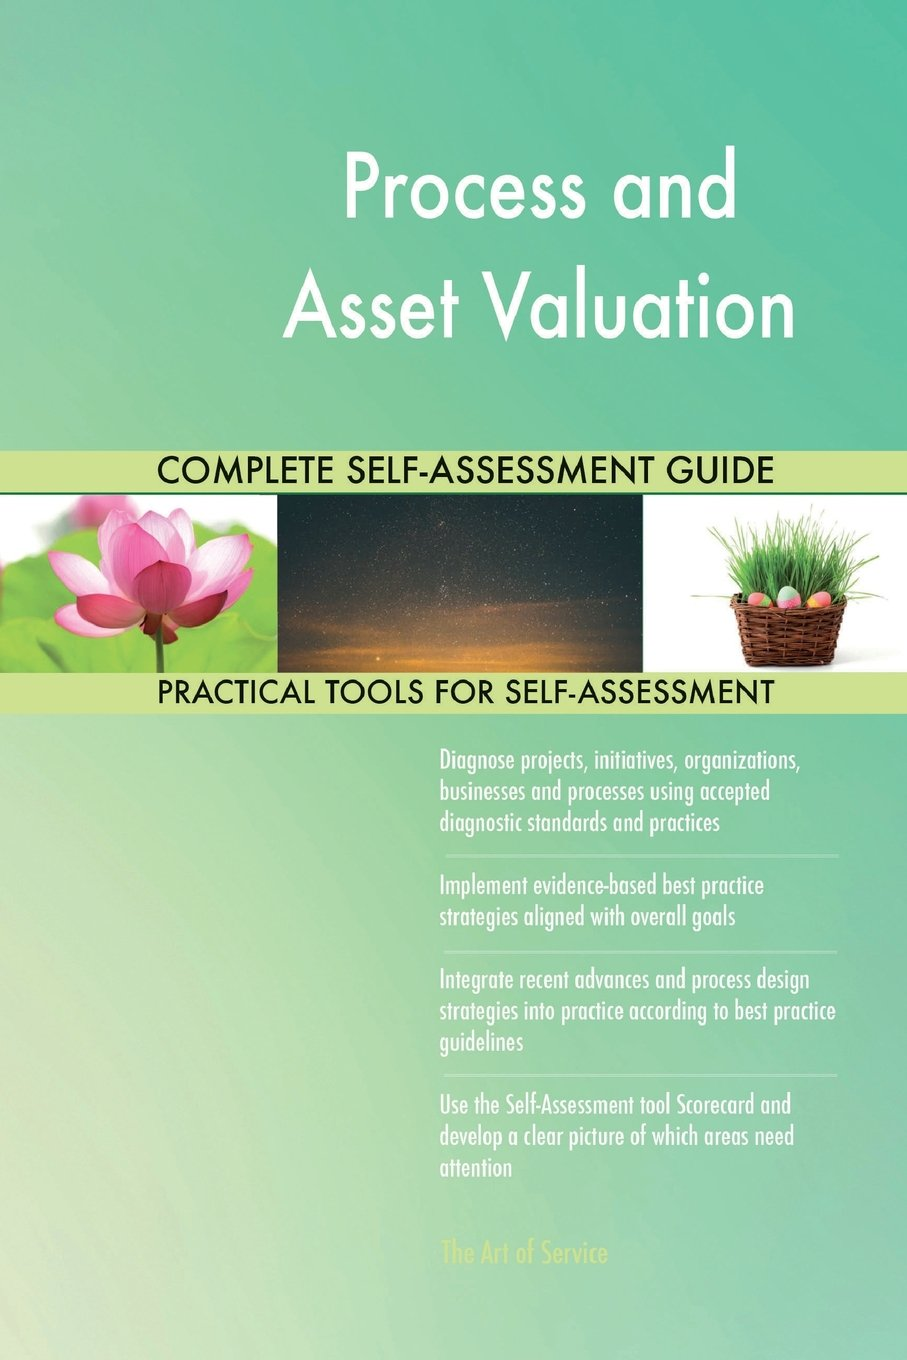 Download Process and Asset Valuation Complete Self-Assessment Guide ebook